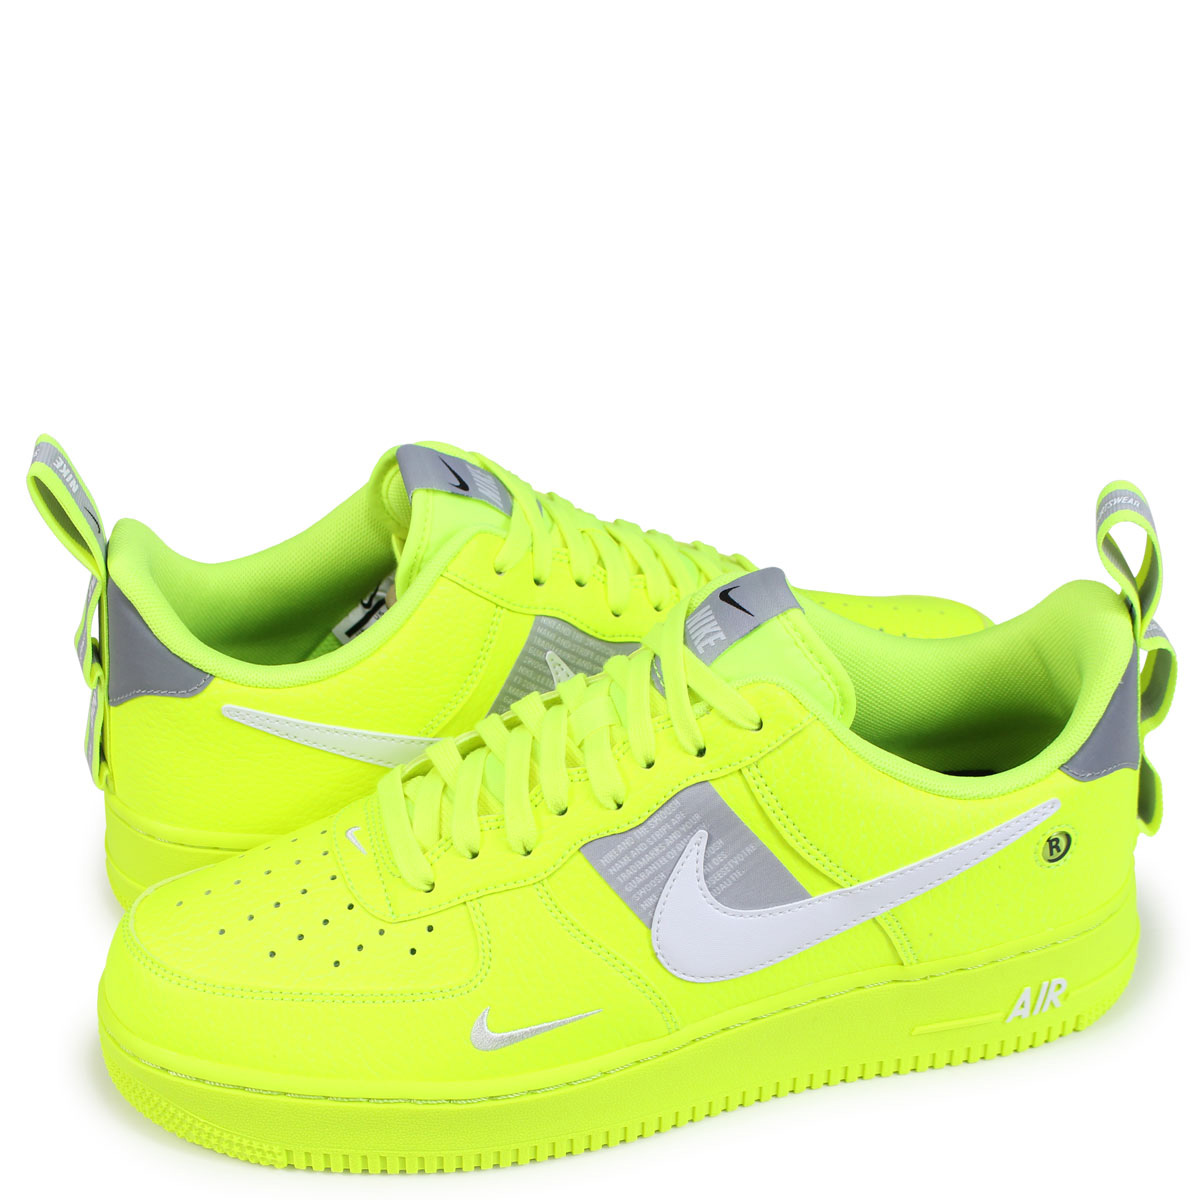 Nike NIKE air force 1 sneakers men AIR FORCE 1 07 LV8 UTILITY yellow AJ7747 700